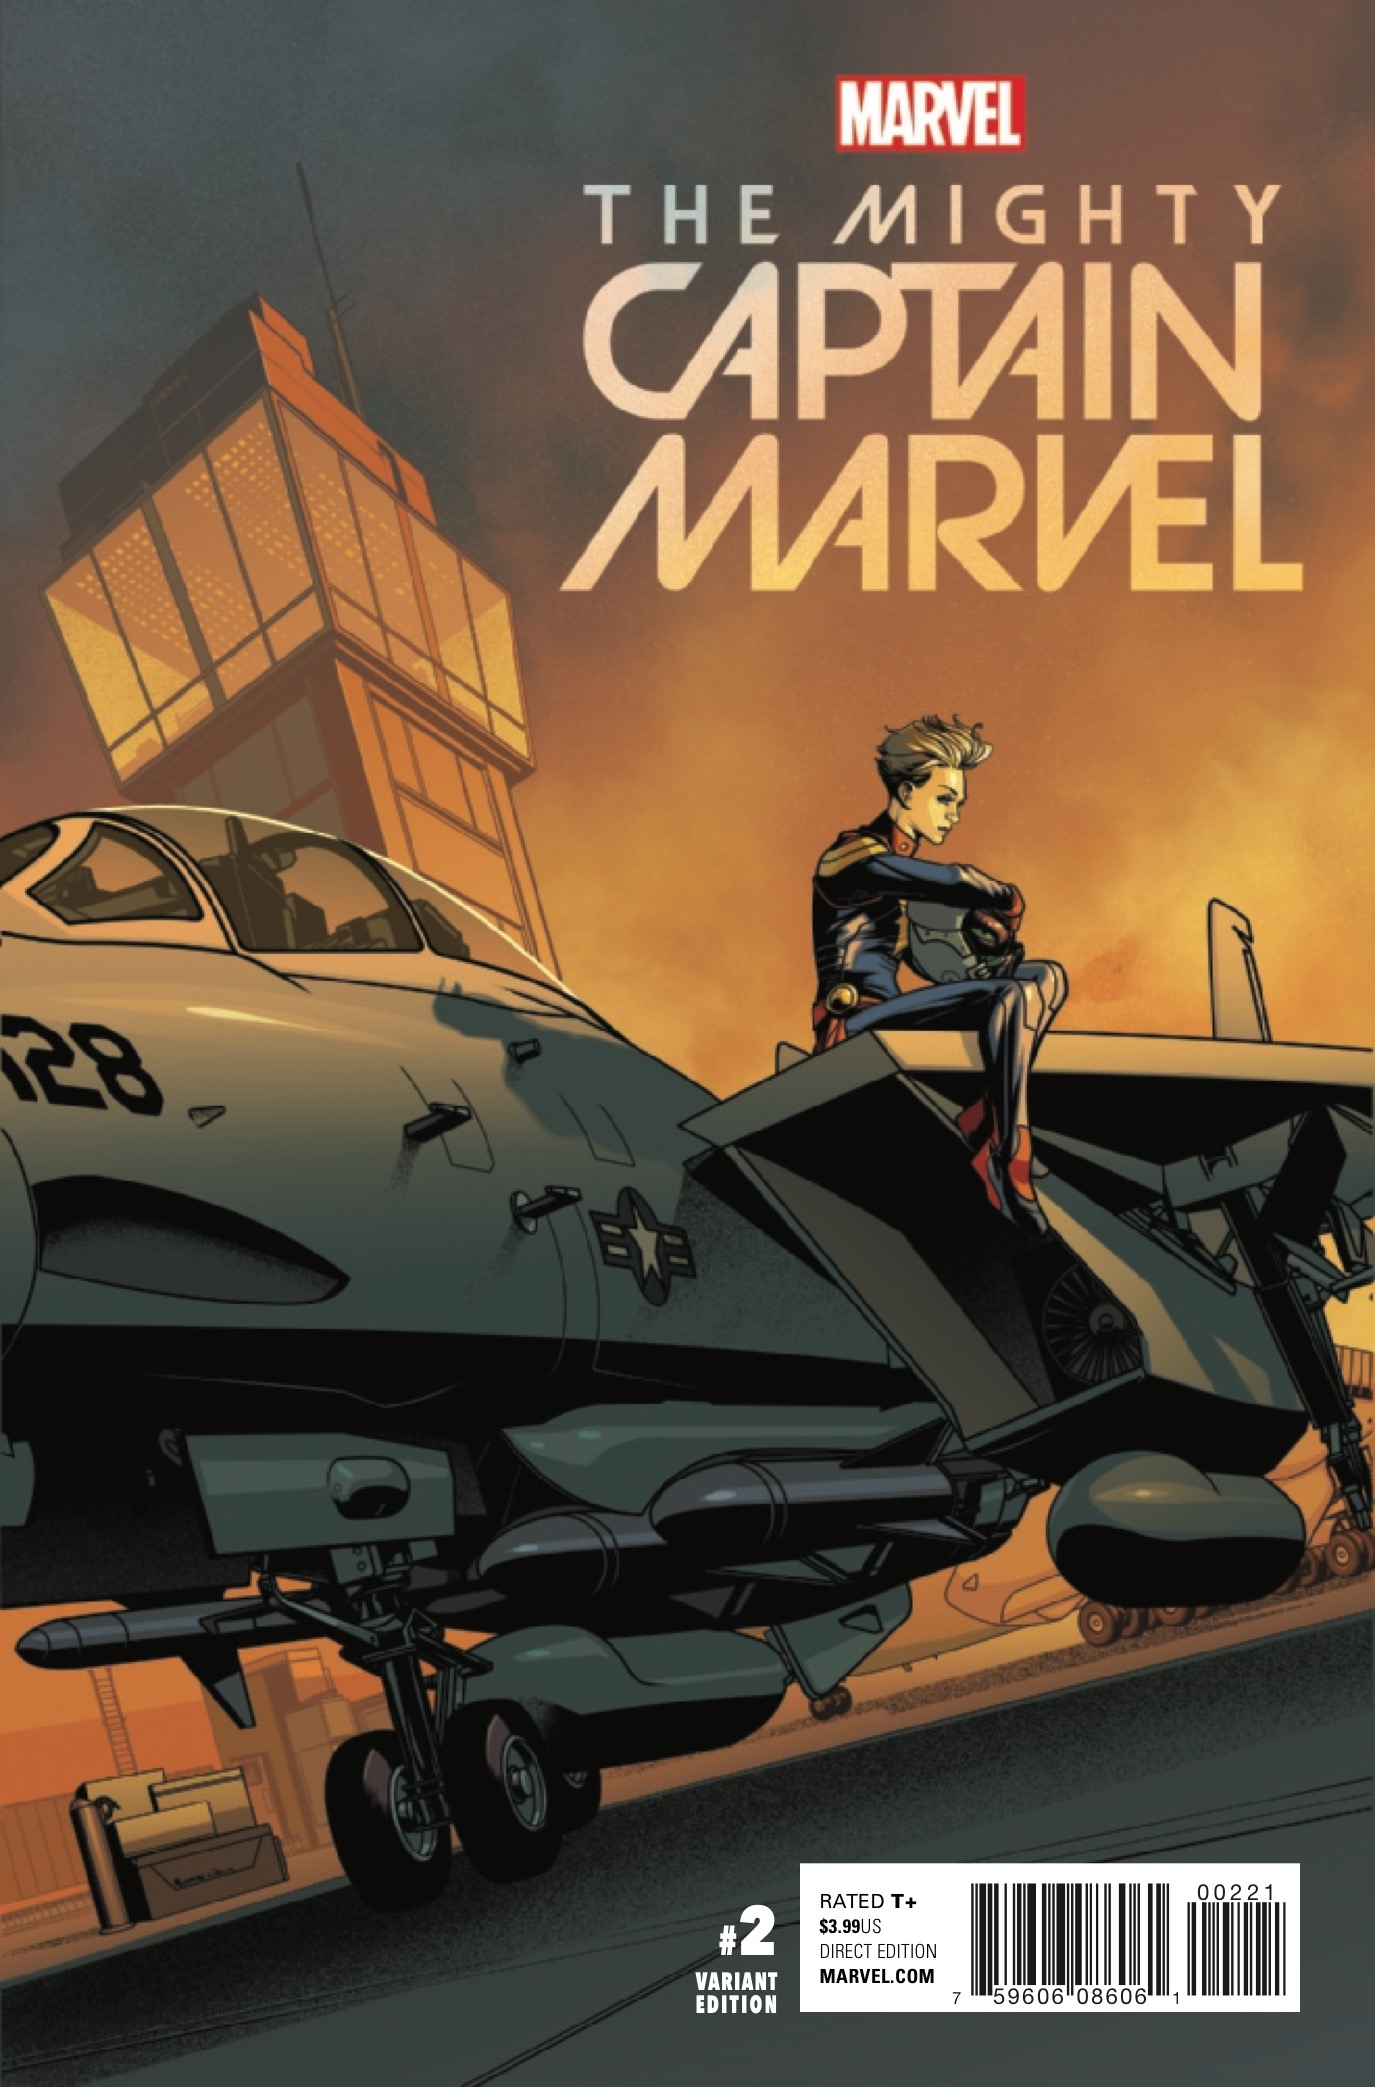 The Mighty Captain Marvel #2 Review